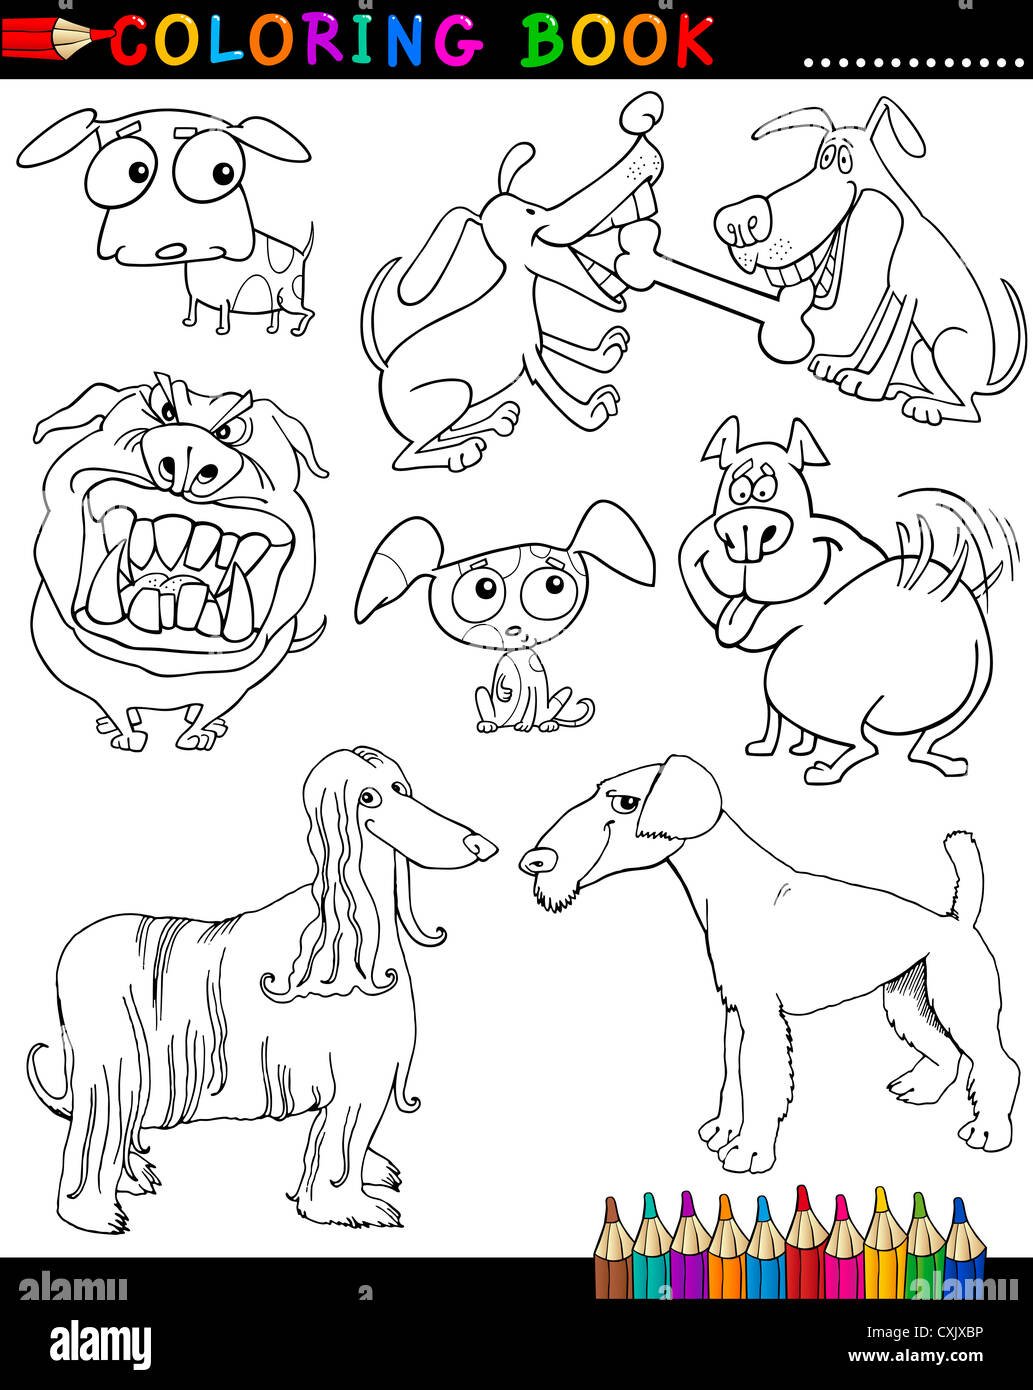 Airedale Terrier Mongrel Stock Photos U0026 Airedale Terrier Mongrel Bedlington  Terrier Airedale Terrier Coloring Book